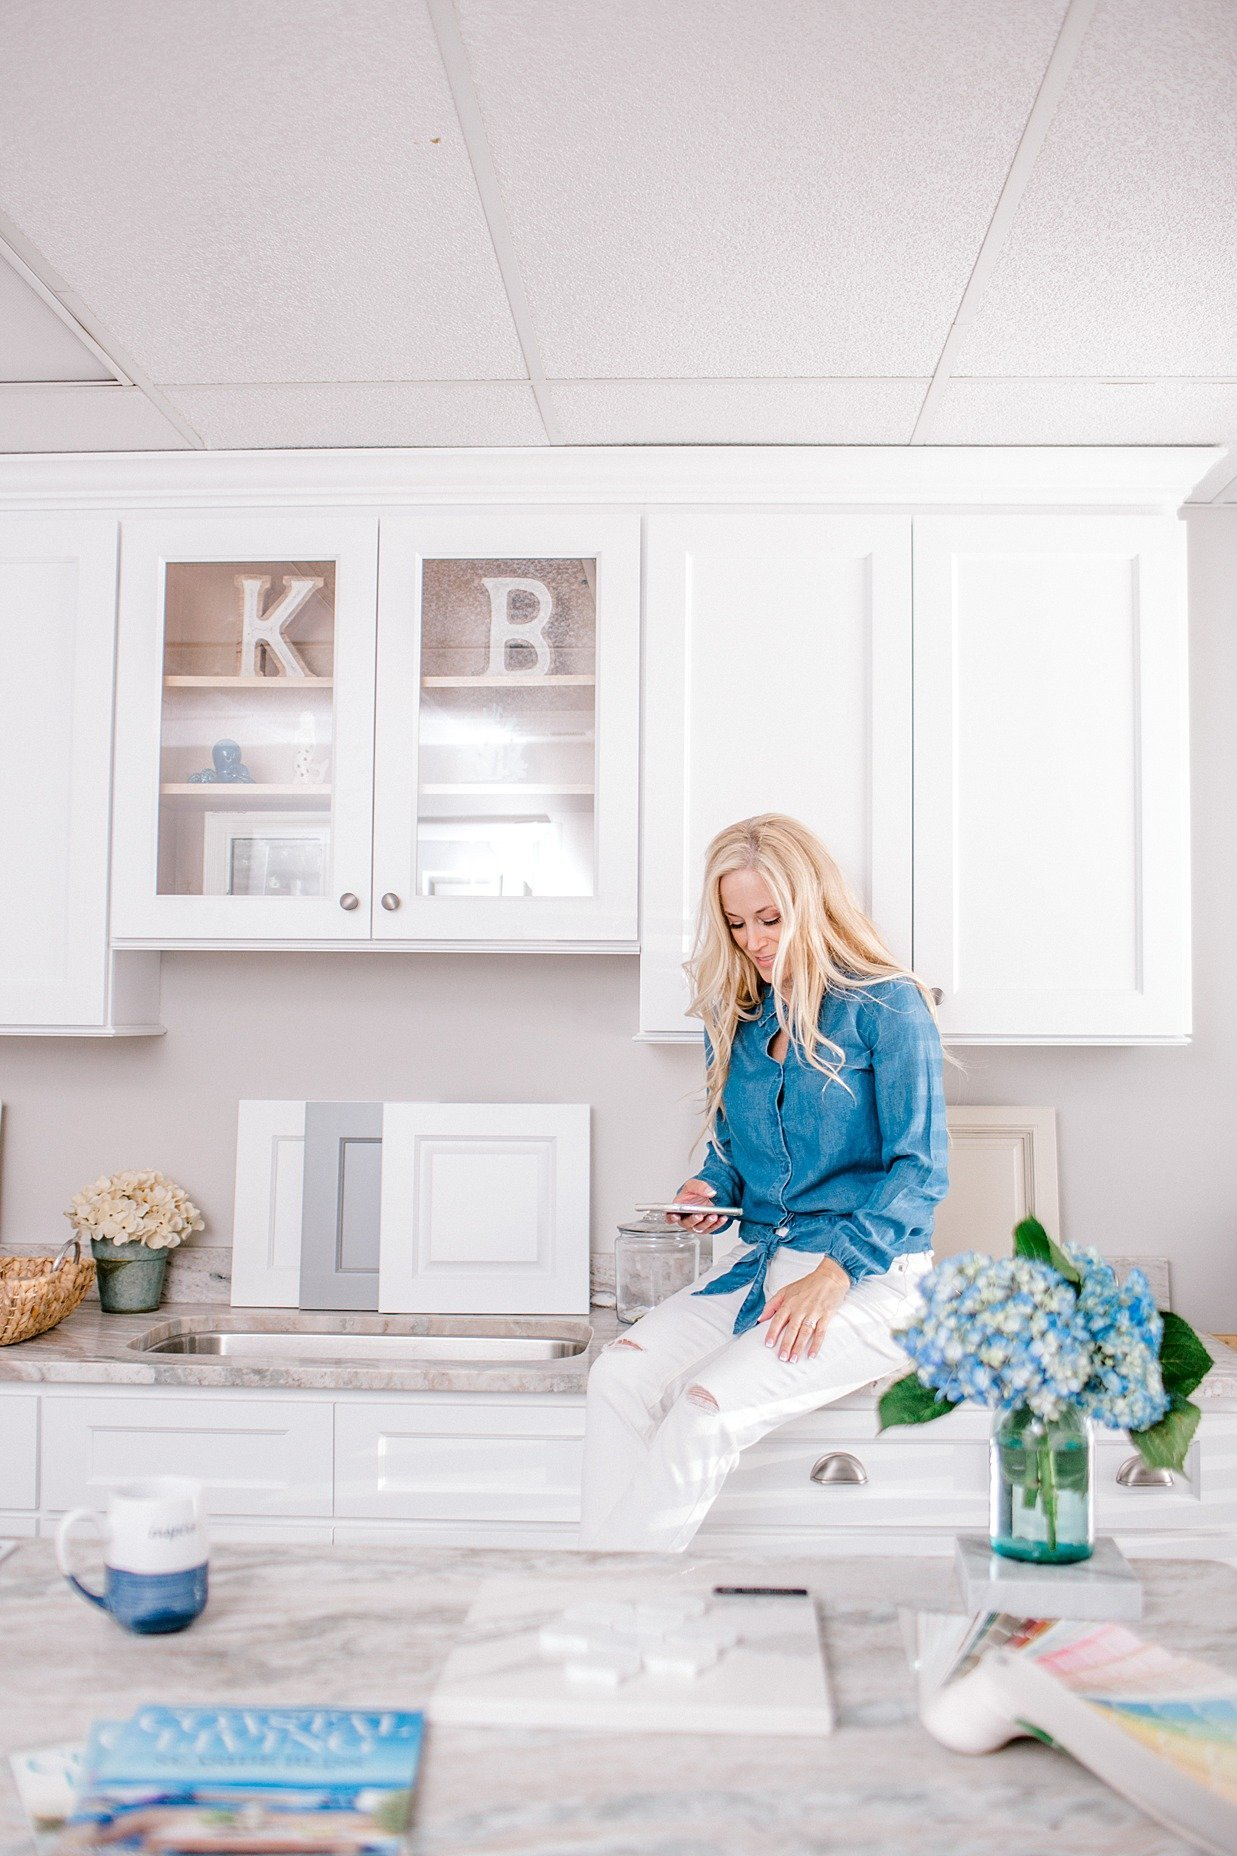 Kriste Wilson K&B Designs Kitchen Bath Branding Headshot Photos VA Beach Yours Truly Portraiture-147